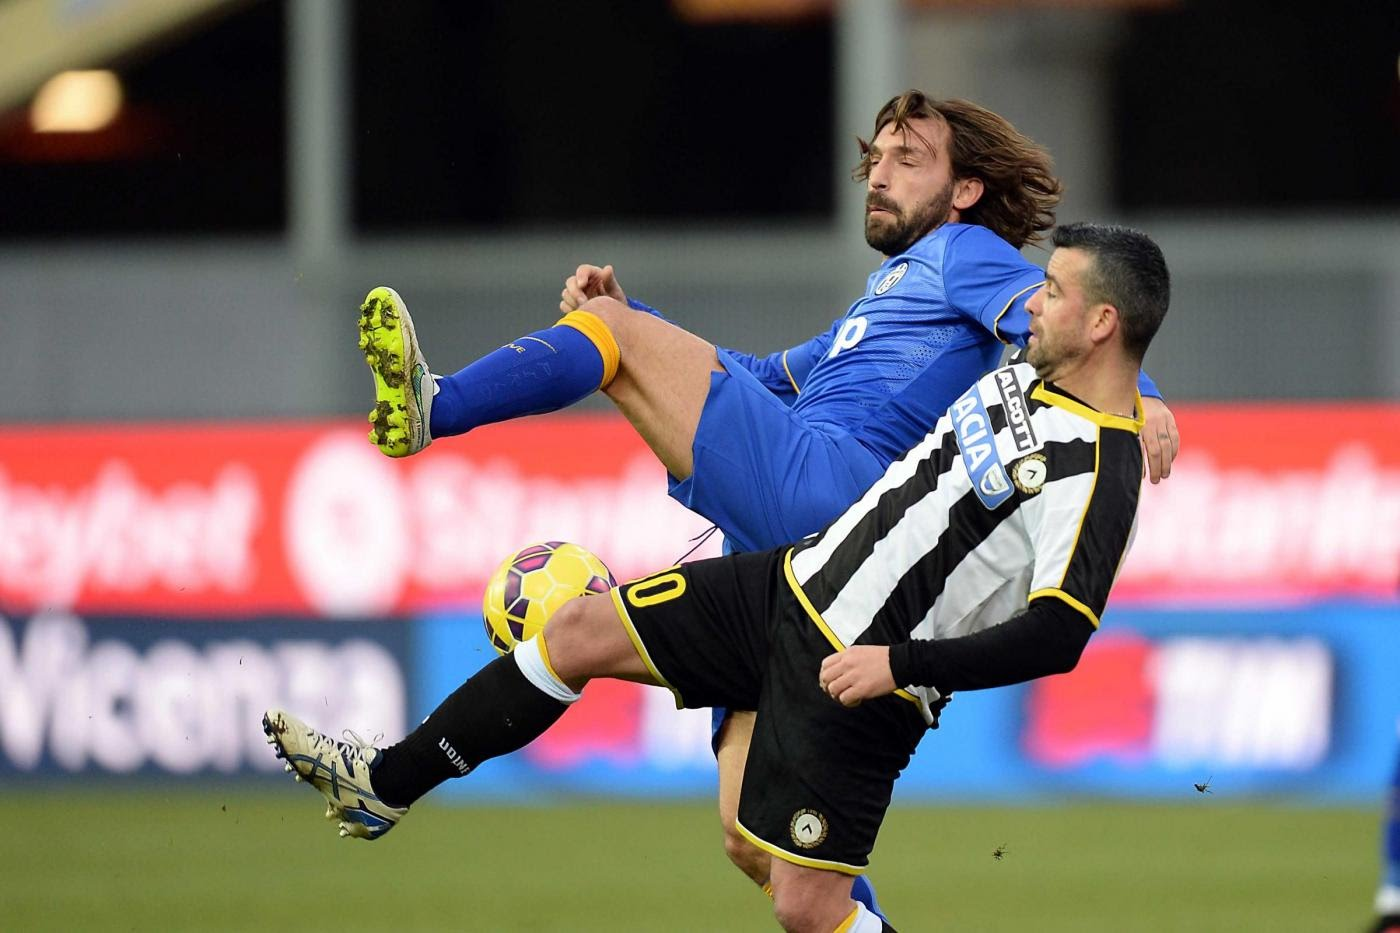 Udinese-Juventus 0-0 - 01/02/2015 - Highlights